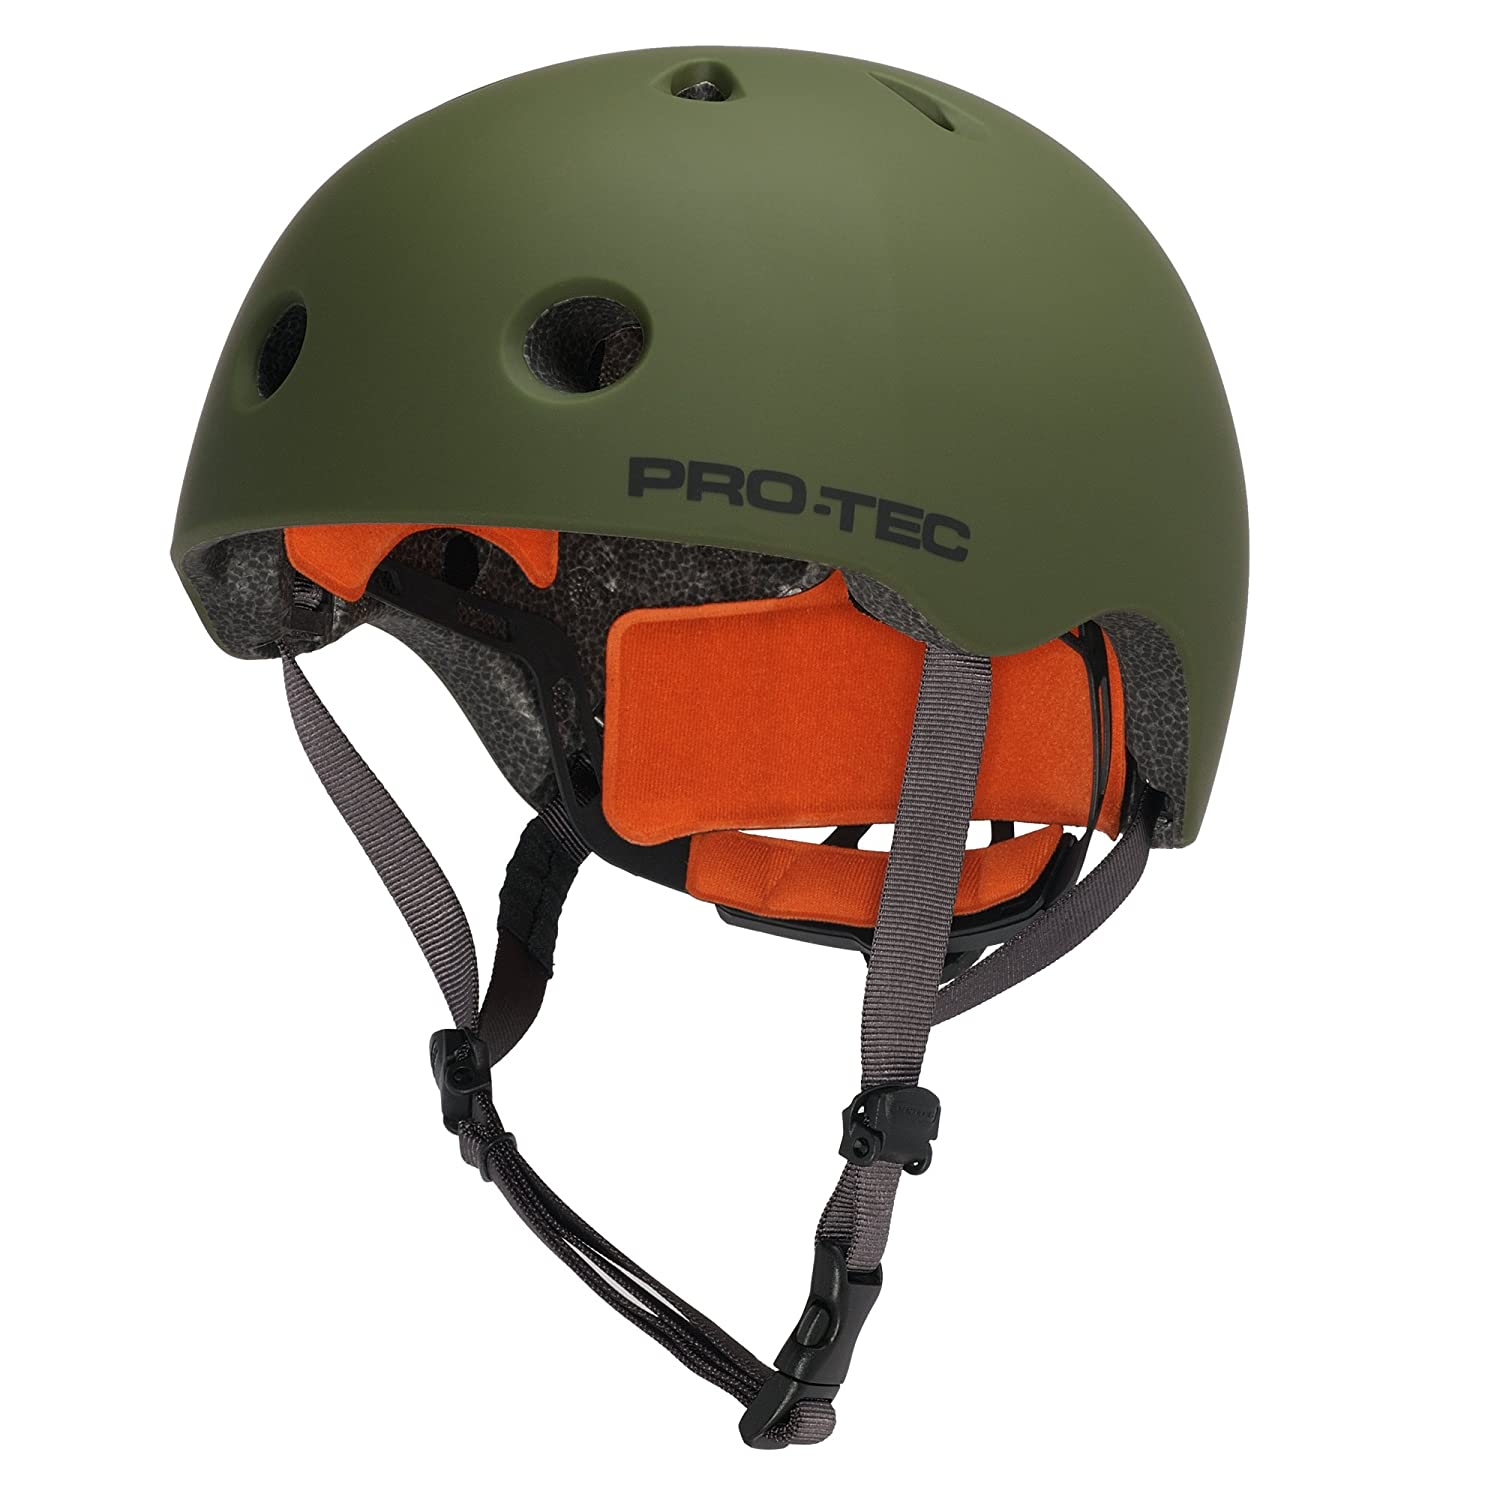 Pro tec Herren Fahrradhelm The City Lite Skate Helm